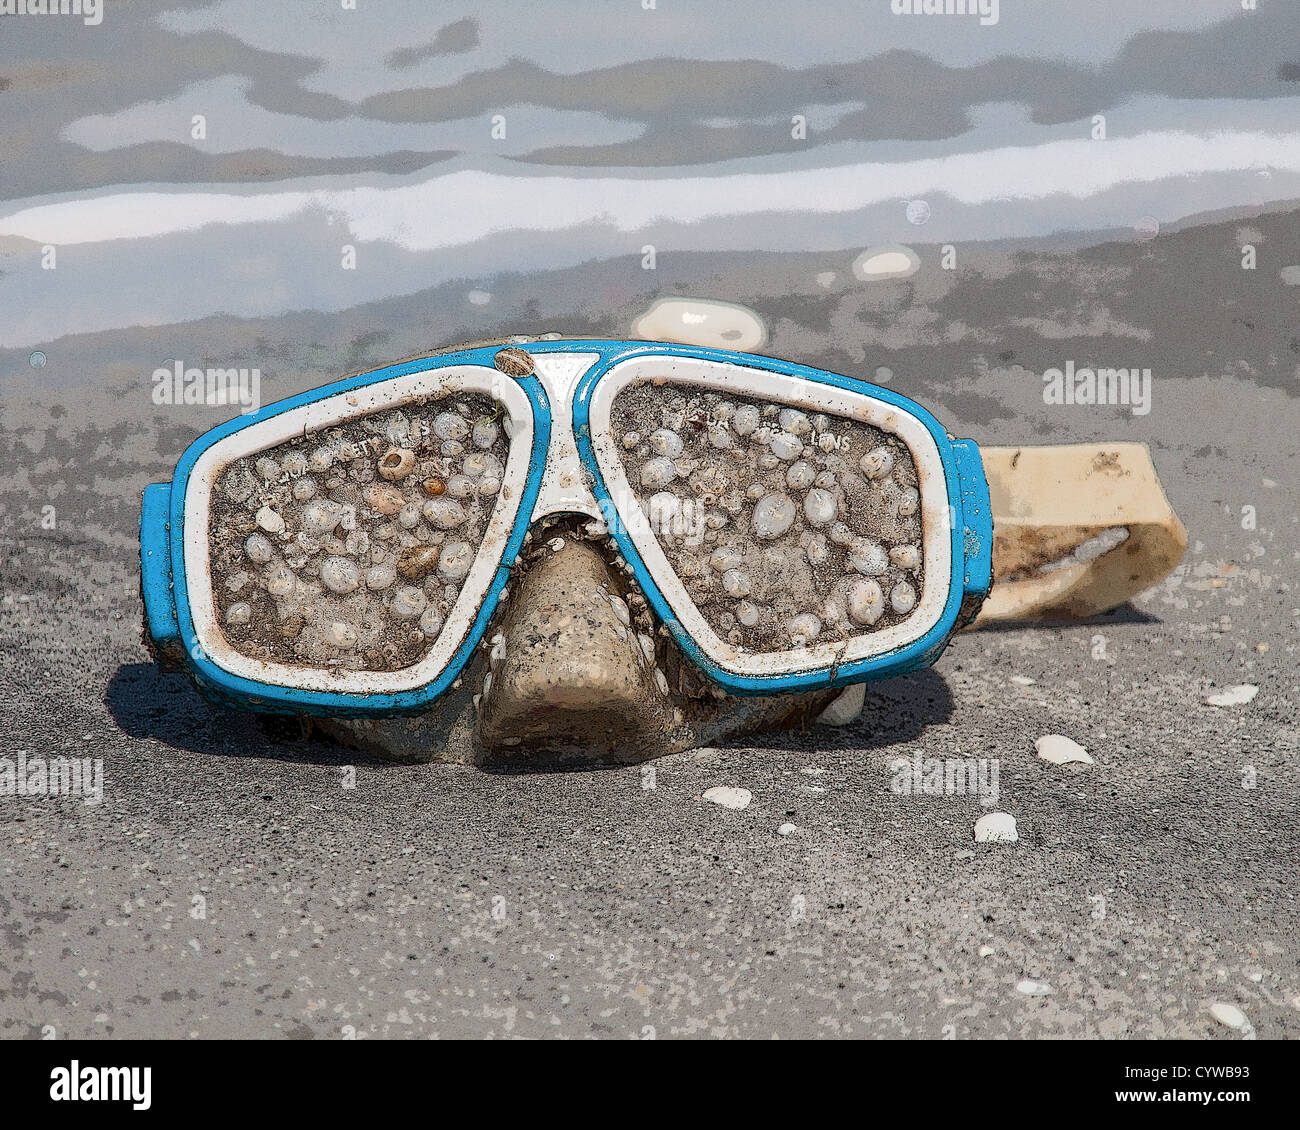 Plastic pollution - dive mask encrusted with barnacles washed ashore - Stock Image